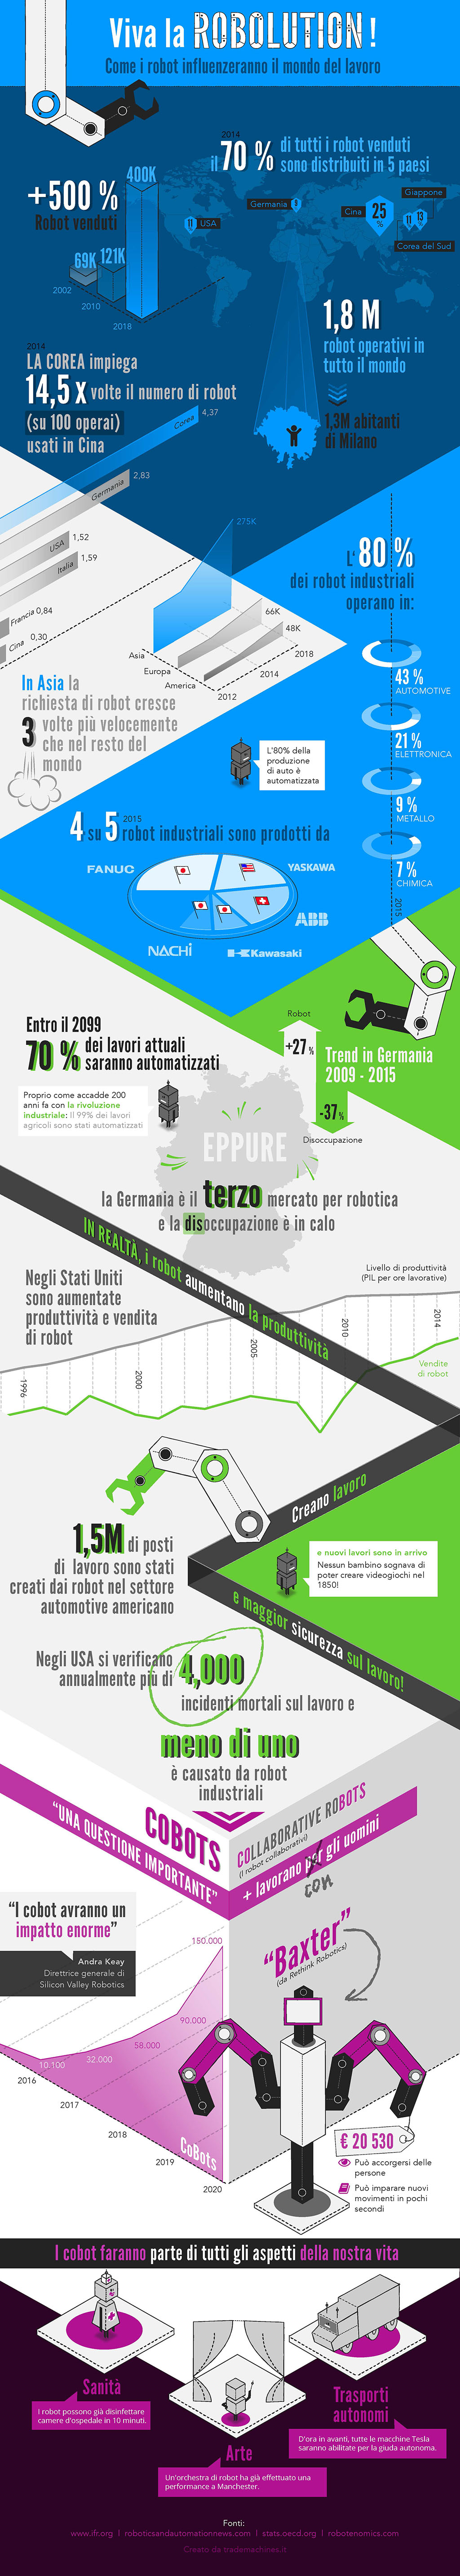 Infografica Industria 4.0 - Trade Machines